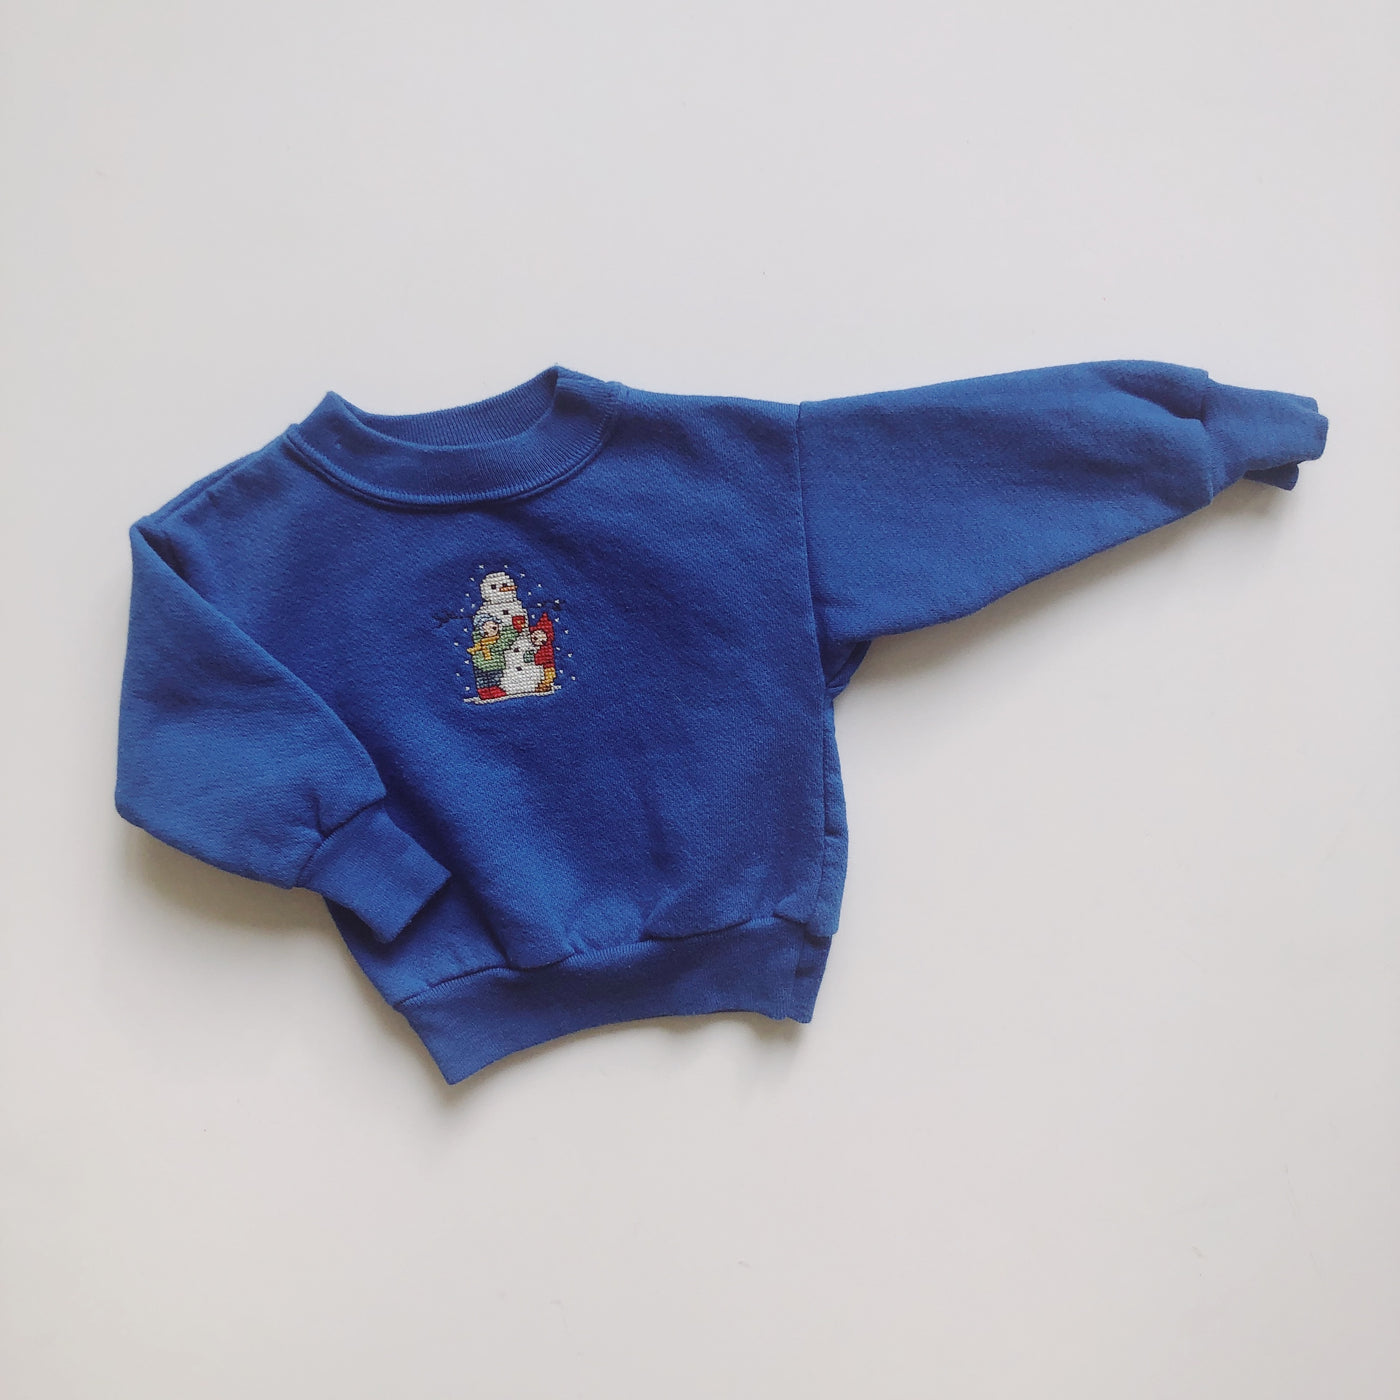 Vintage Spencer's Embroidered Snowman Sweatshirt / Size 9-12M